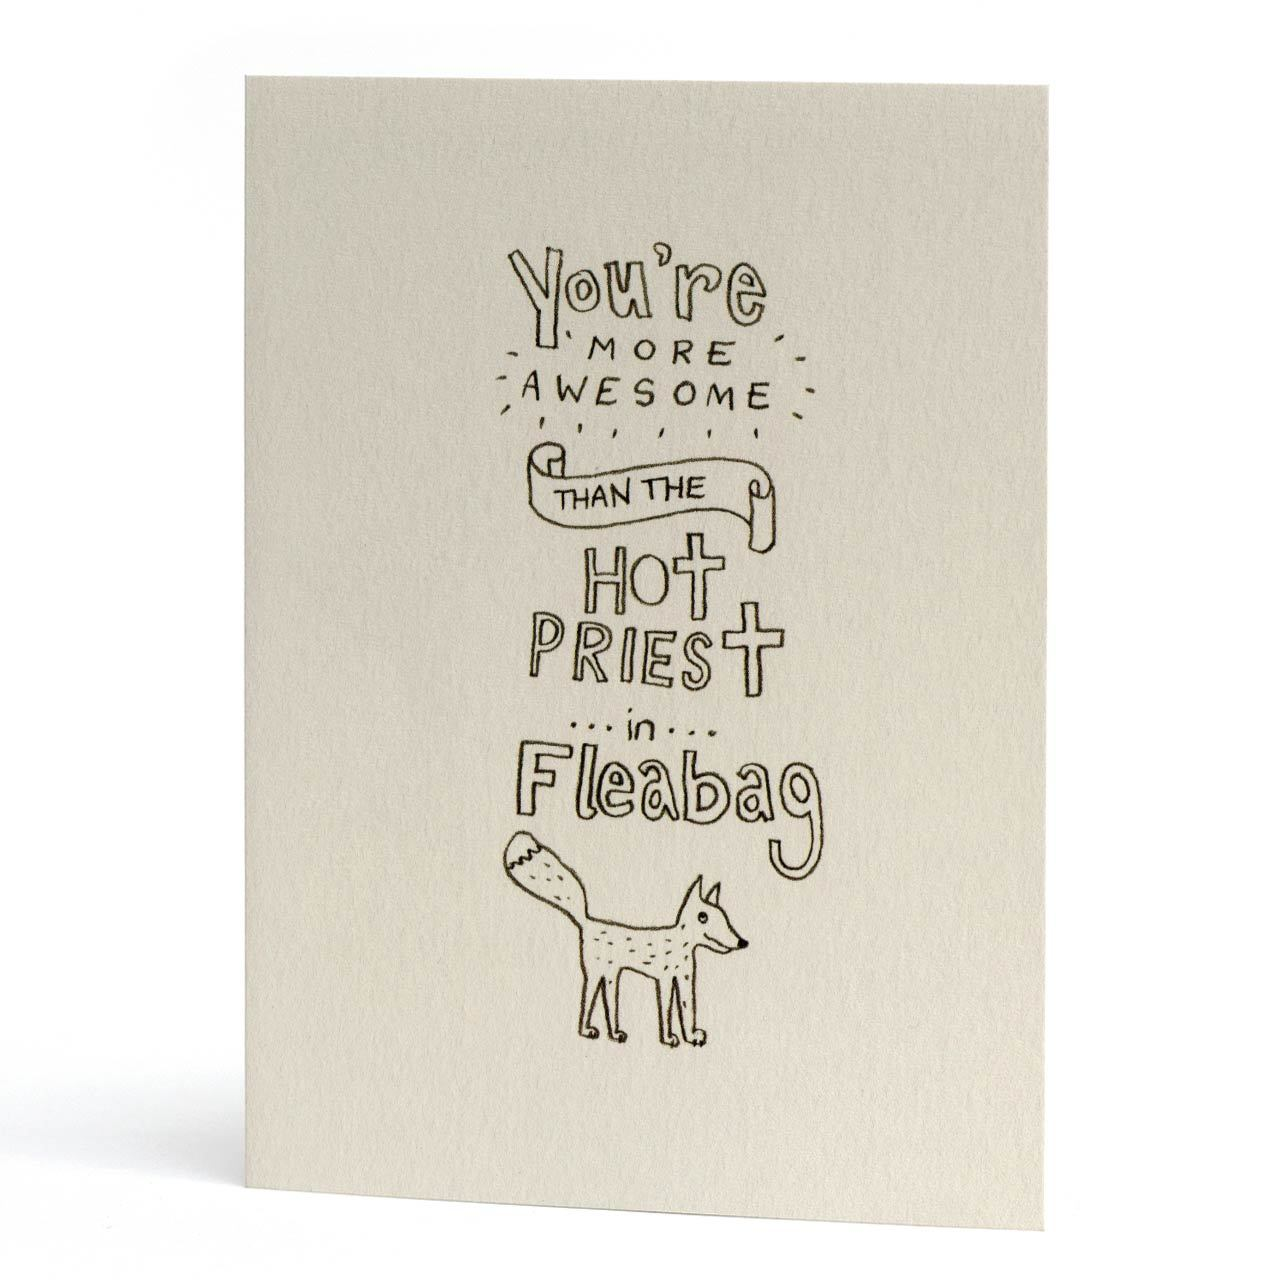 Fleabag Awesome Greeting Card